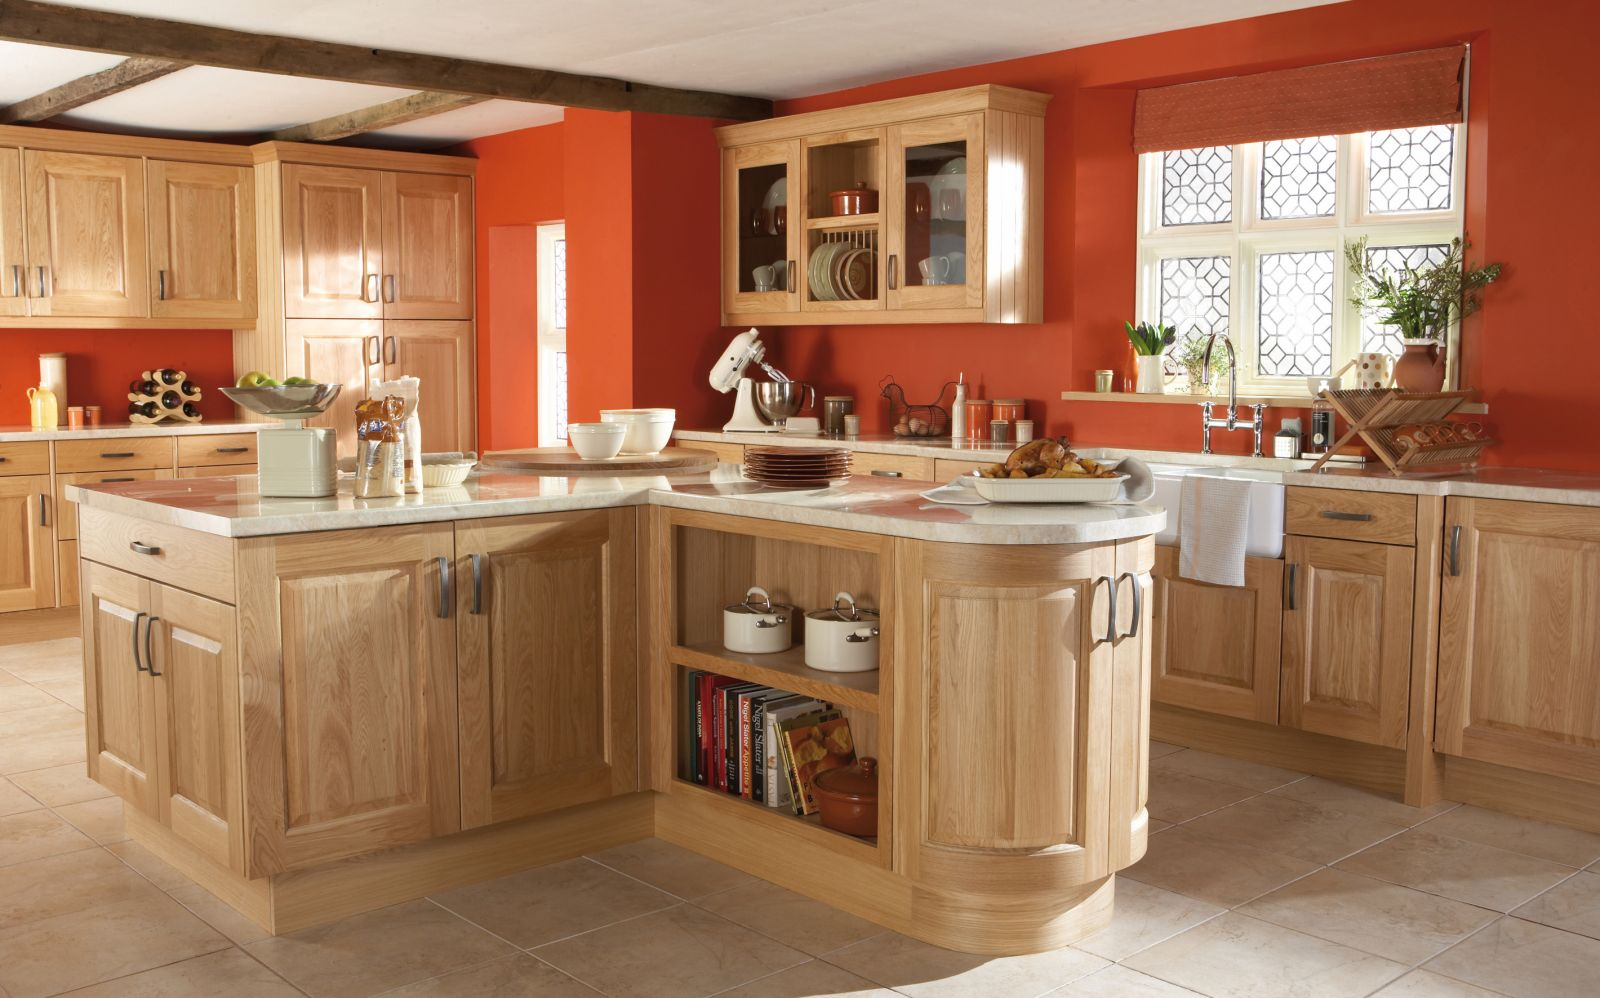 Kinsale Natural Oak Made Entirely From Solid Oak The Kinsale Kitchen . Full resolution‎  image, nominally Width 1600 Height 998 pixels, image with #A94022.